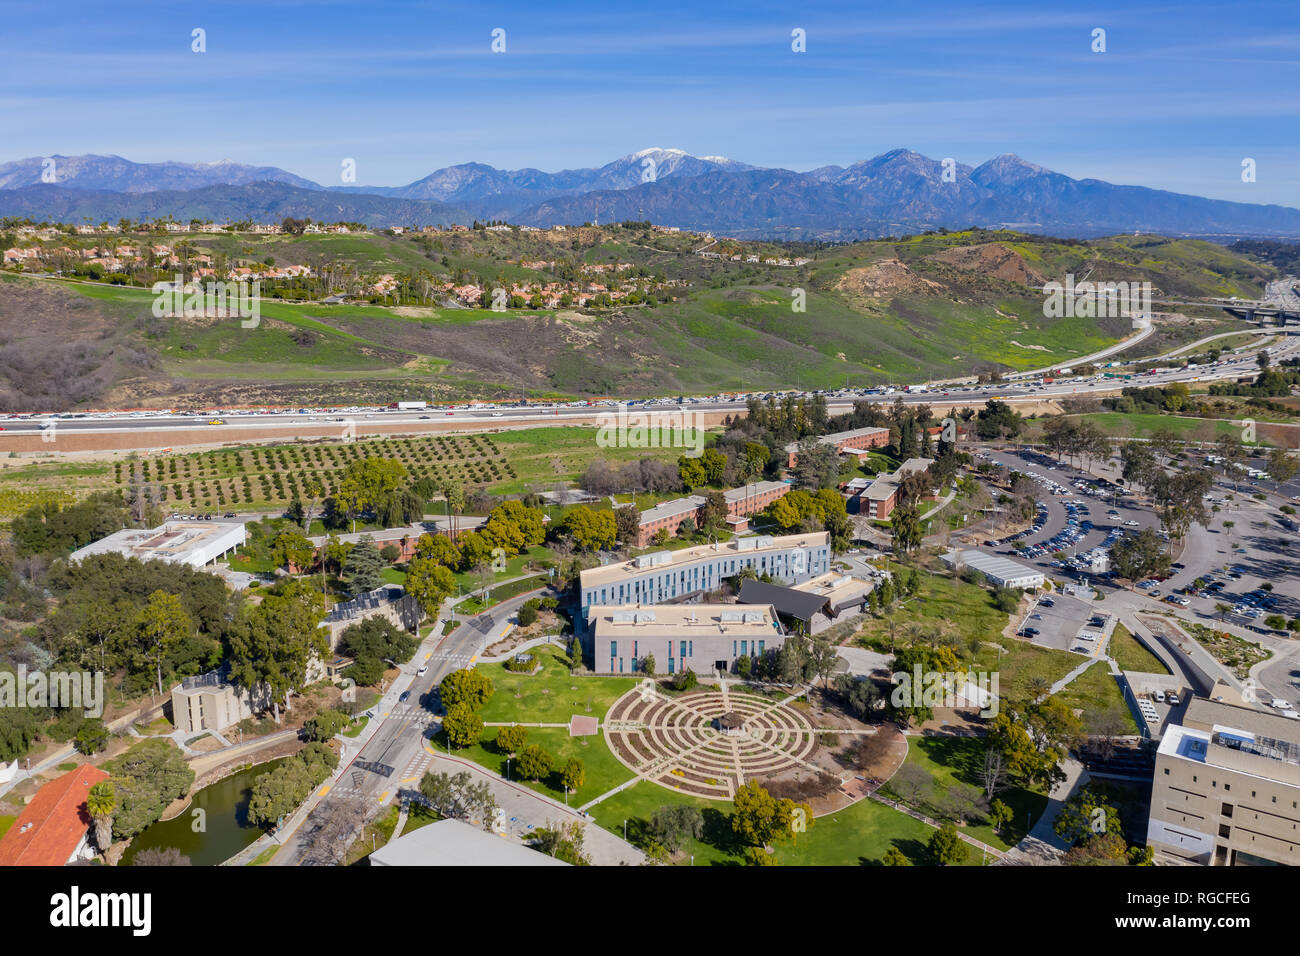 Aerial view of the beautiful rose garden with Mount Baldy of Cal Poly Pomona at Los Angeles County, California - Stock Image